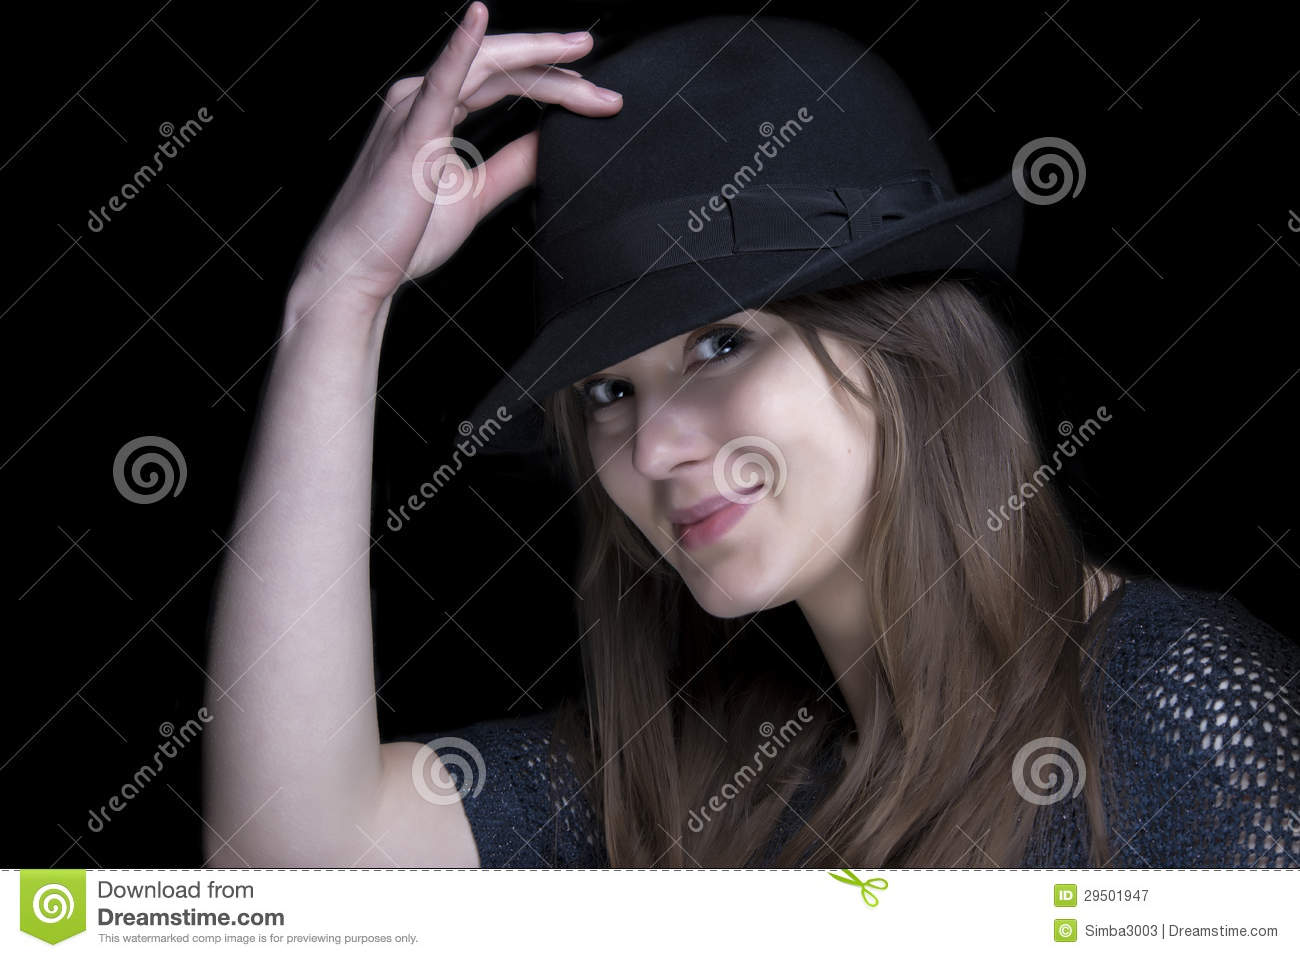 Girl In Black With Stylish Black Hat Stock Image - Image of elegant ... 0f2a4d501e4